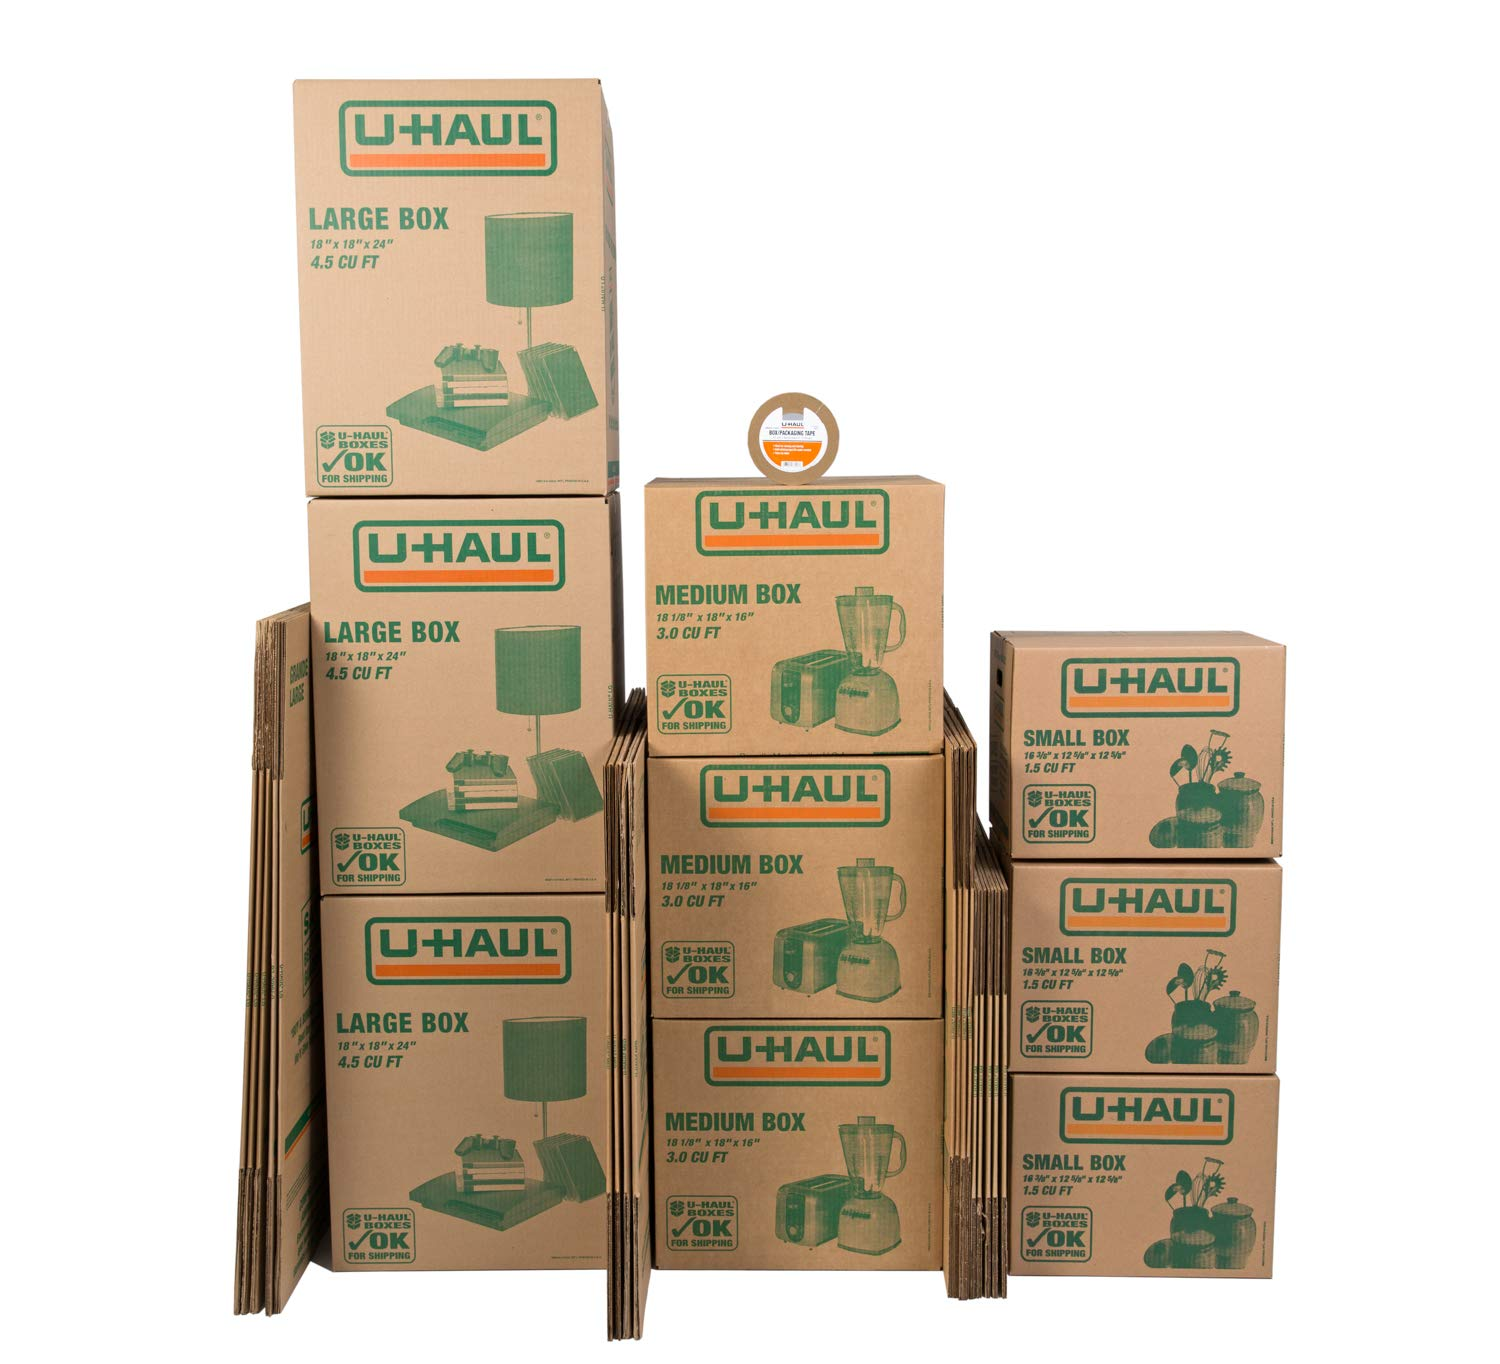 U-Haul Moving Box Combo Pack of 10 Small, 10 Medium, and 5 Large Boxes - Bonus Roll of Tape Included